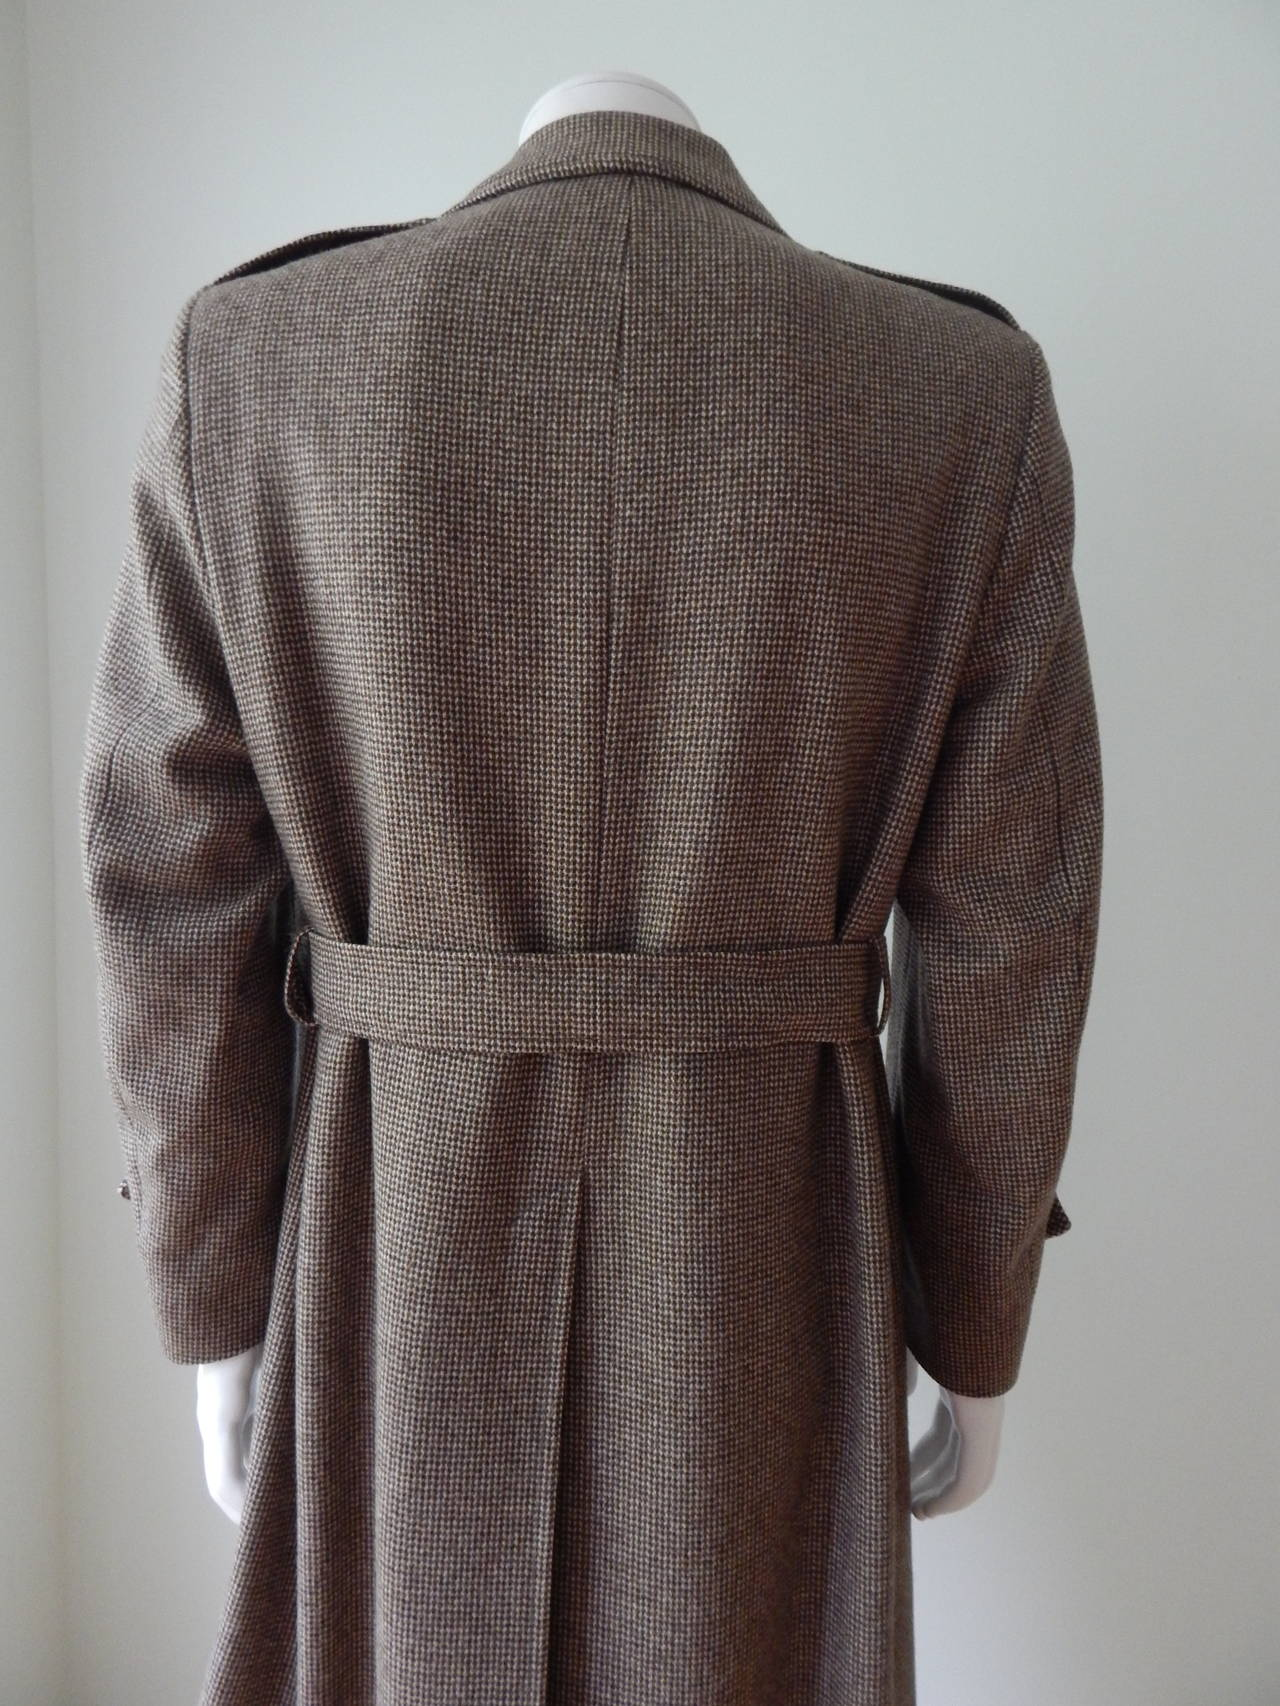 Yves Saint Laurent Mens Coat 8